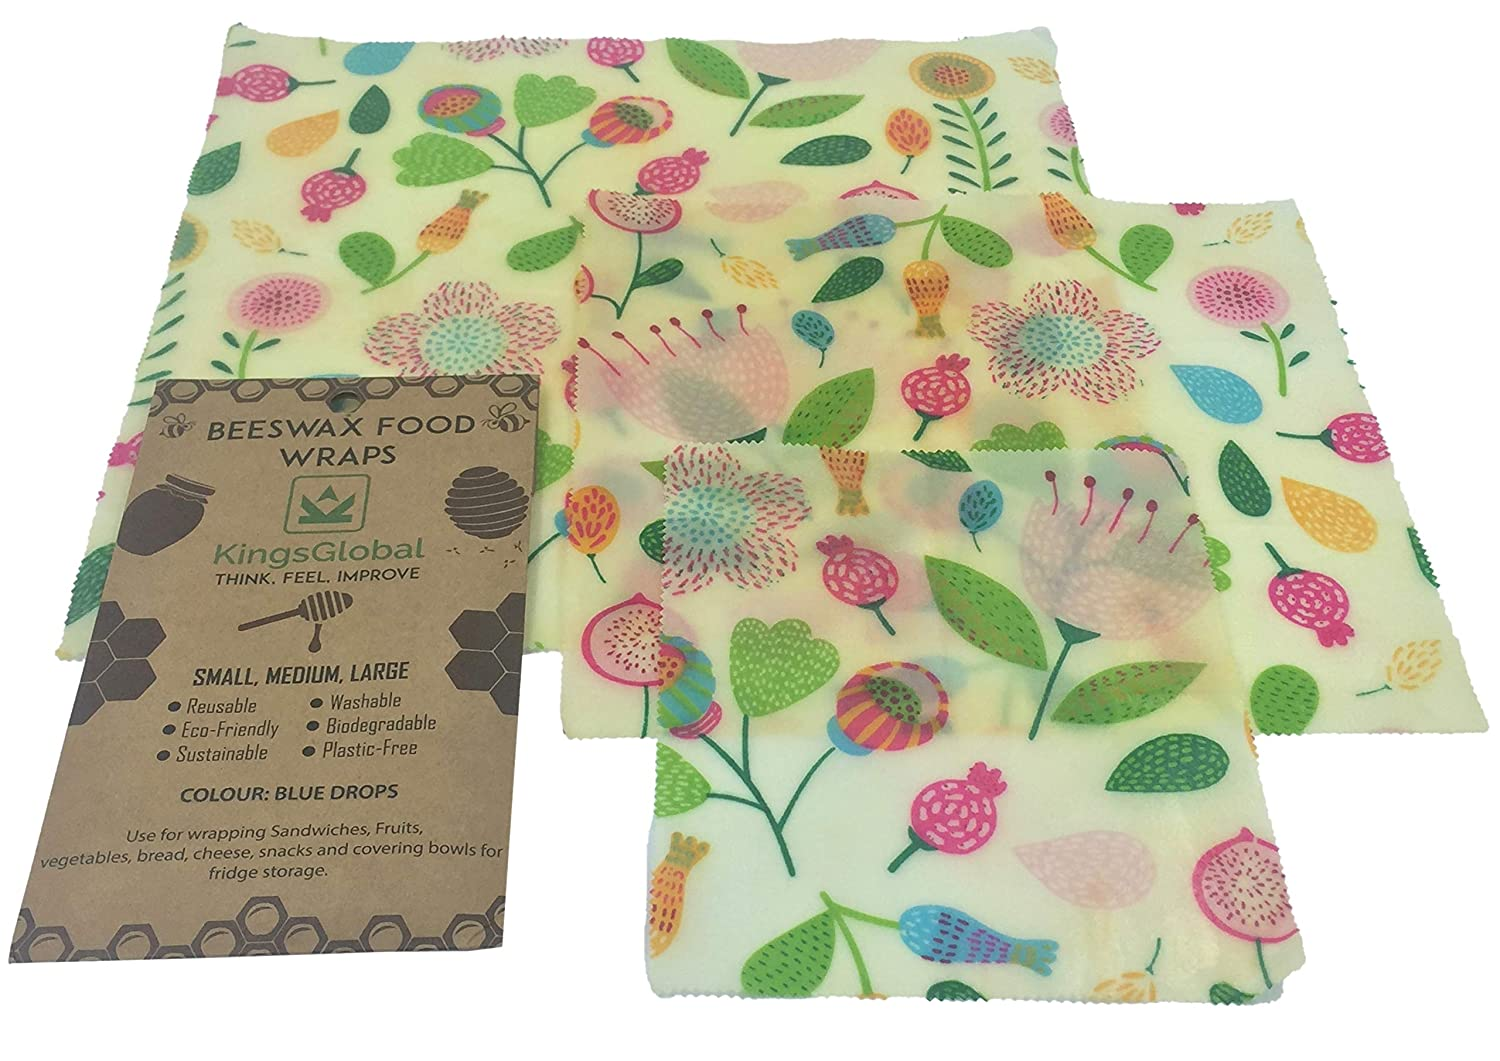 Reusable Beeswax Food Wrap Eco Friendly (Set of 3) sustainable organic biodegradable cotton sheets bees wax wraps | Great safe storage keeps produce fresh | Sandwich wrap | Plastic Free zero waste